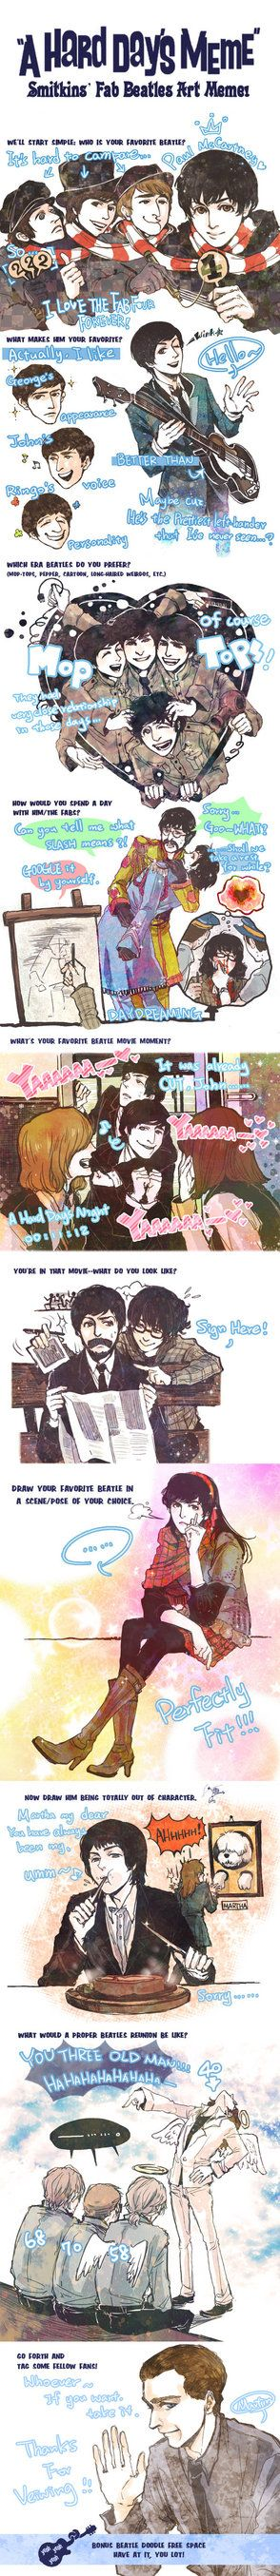 Beatles meme by fionafu0402 on DeviantArt